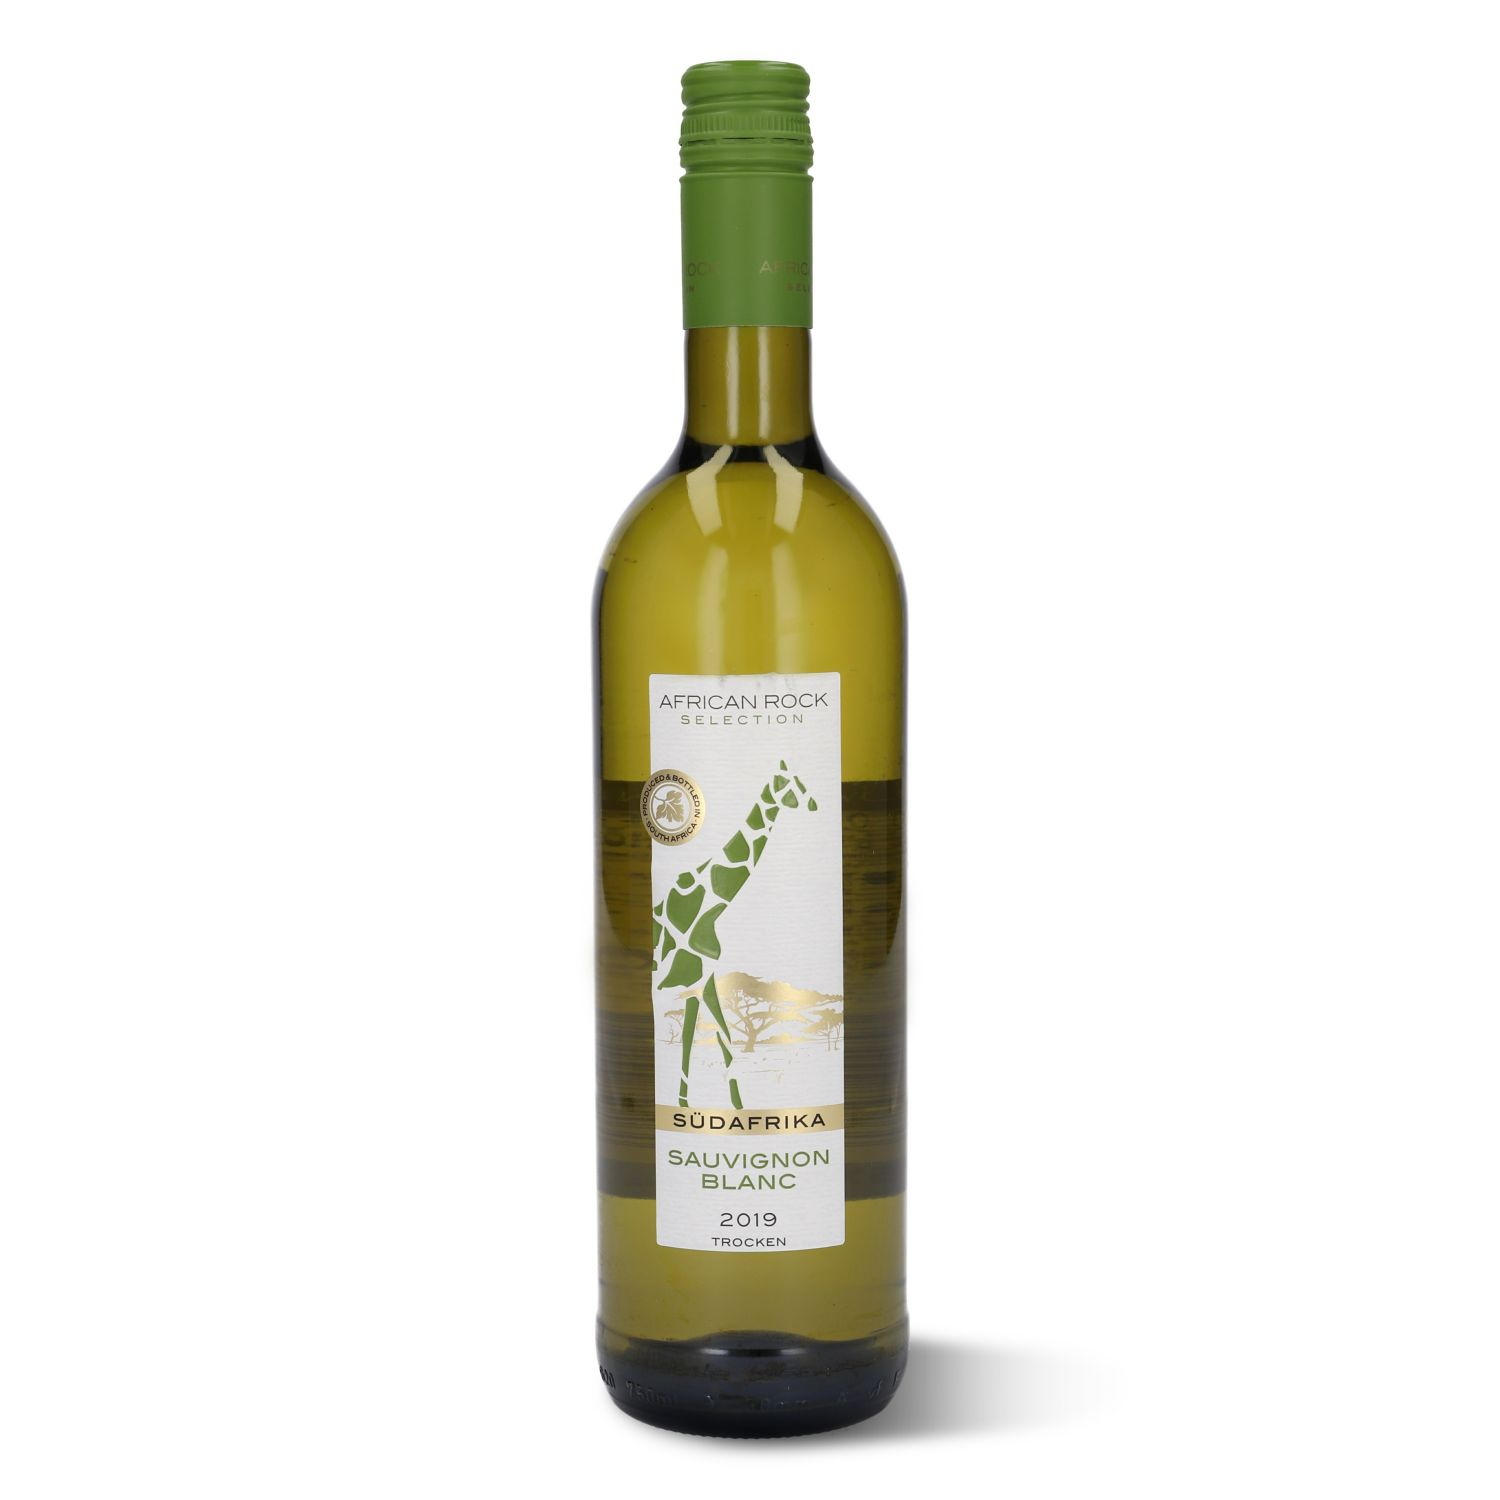 AFRICAN ROCK SELECTION Sauvignon Blanc 0,75l